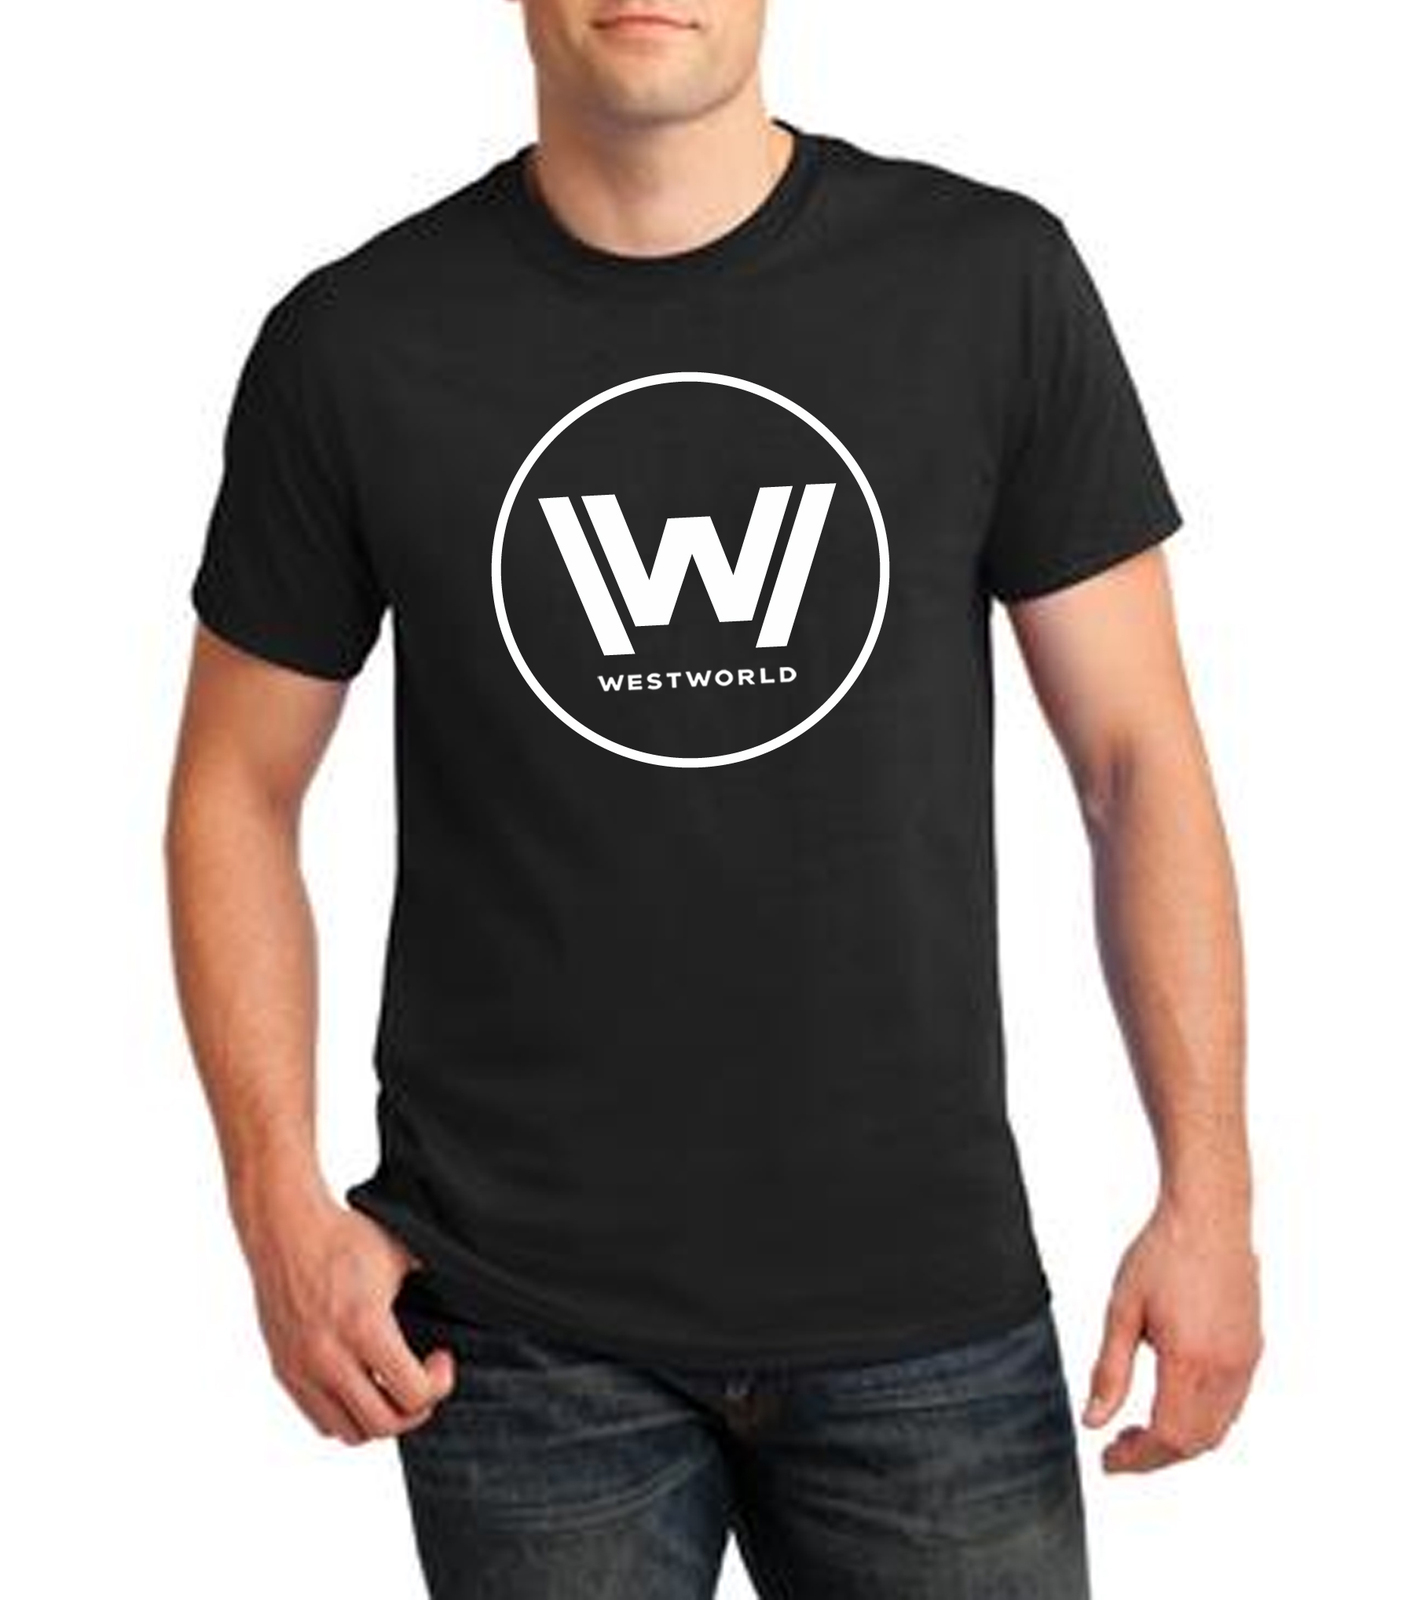 Westworld Logo T-Shirt TV Show HBO Geek Nerd Sci-Fi Gift